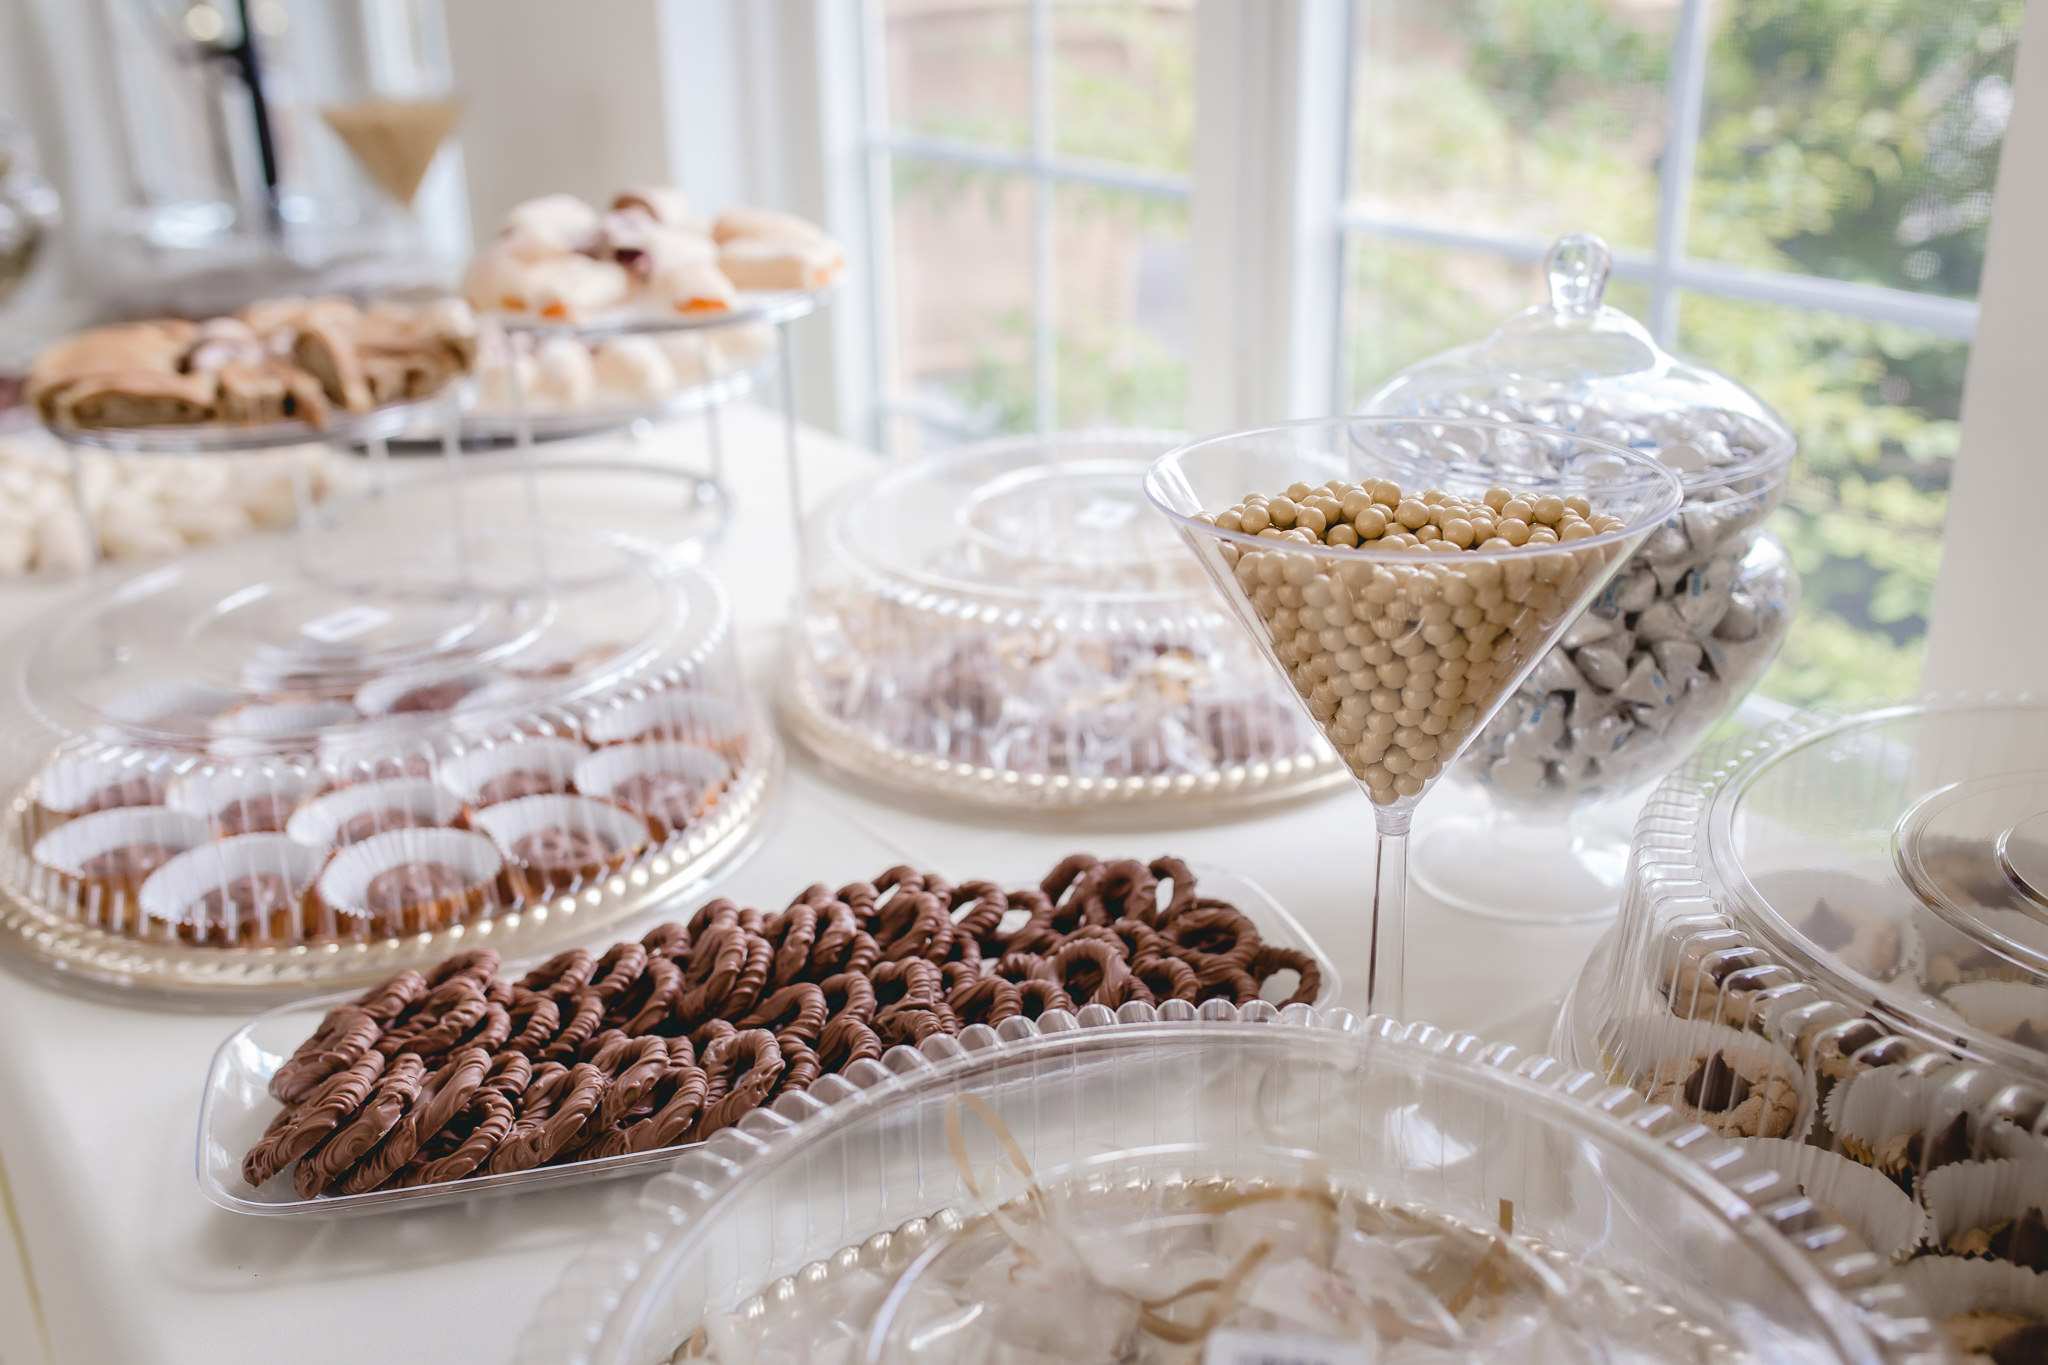 Cookie and dessert table at a Greystone Fields wedding reception